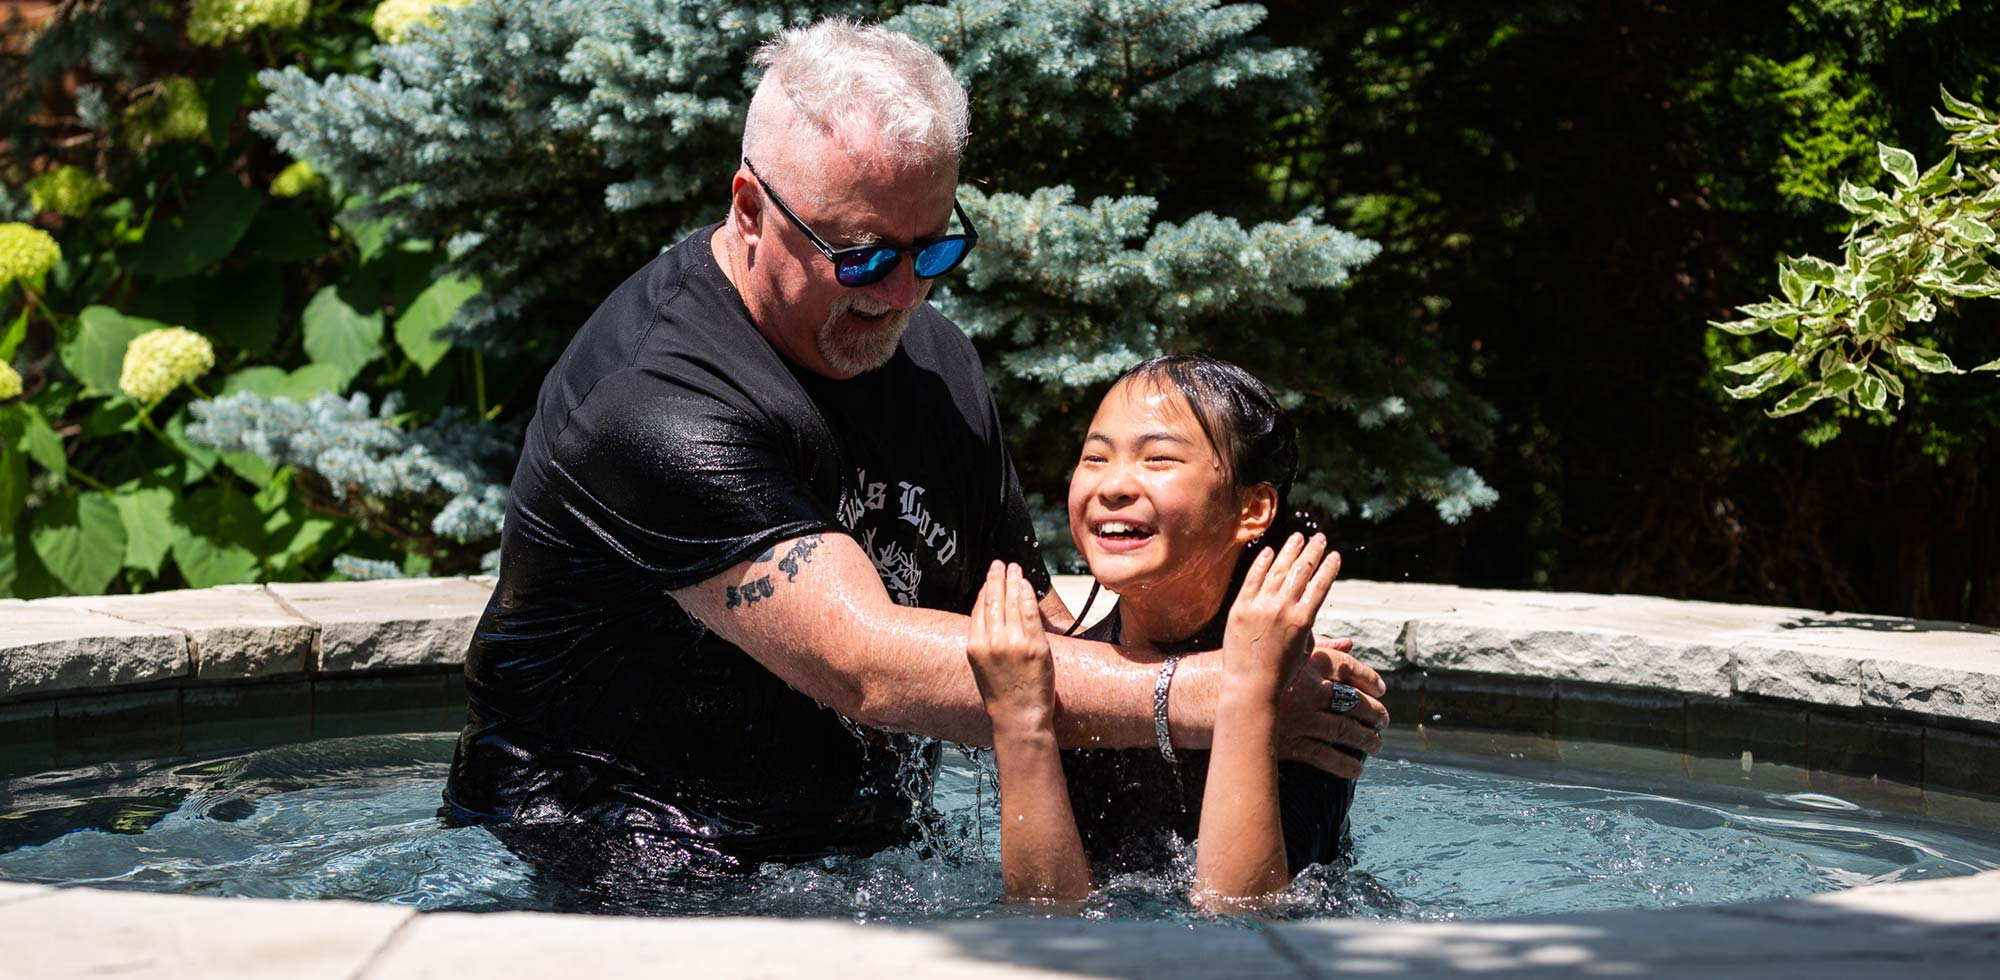 Kristen Pui being baptized by Jack Aldred